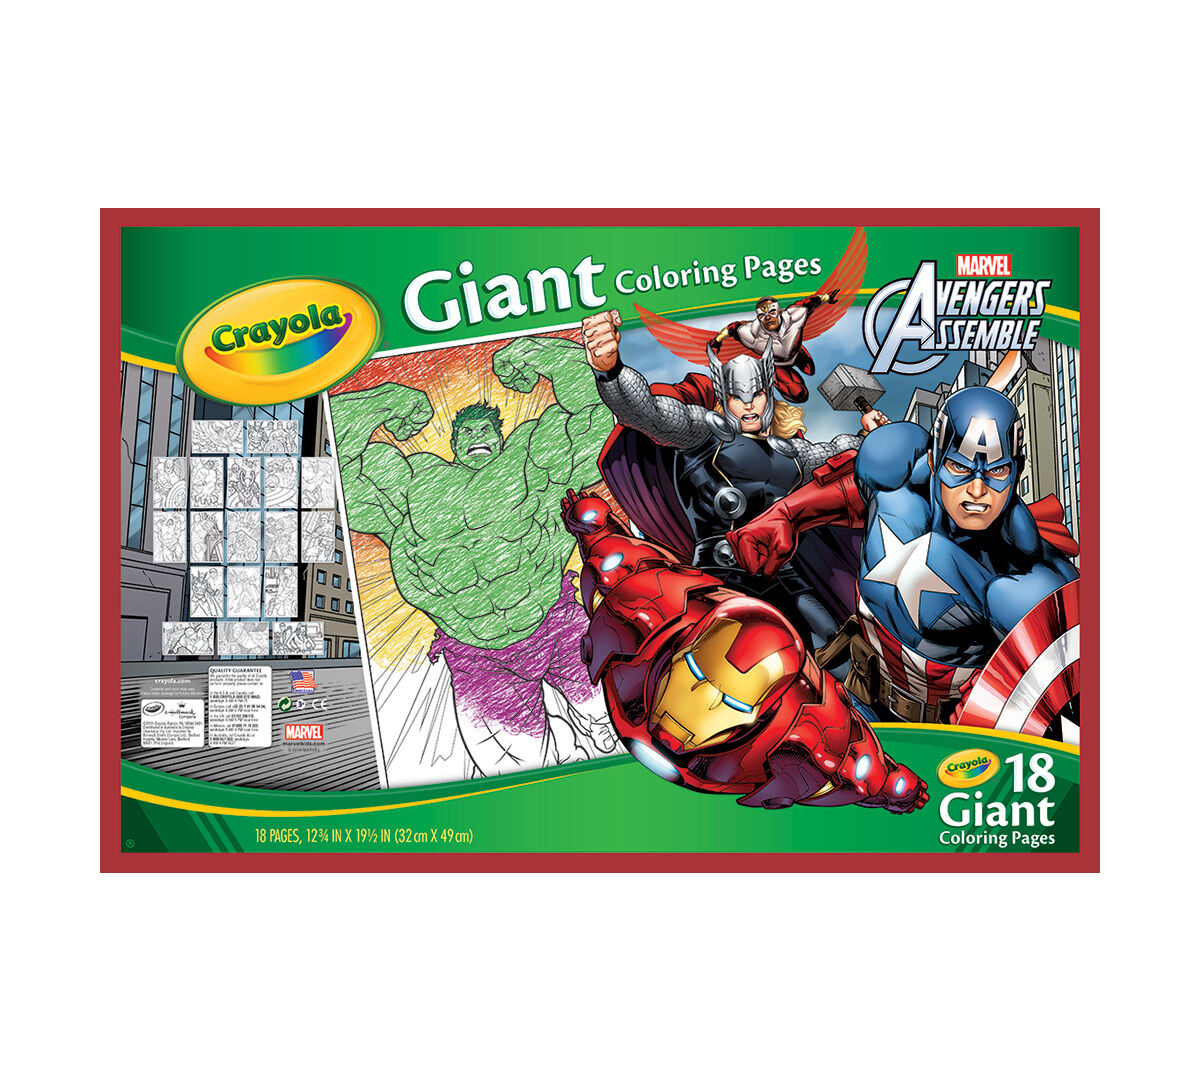 giant coloring pages avengers assemble - Giant Coloring Book